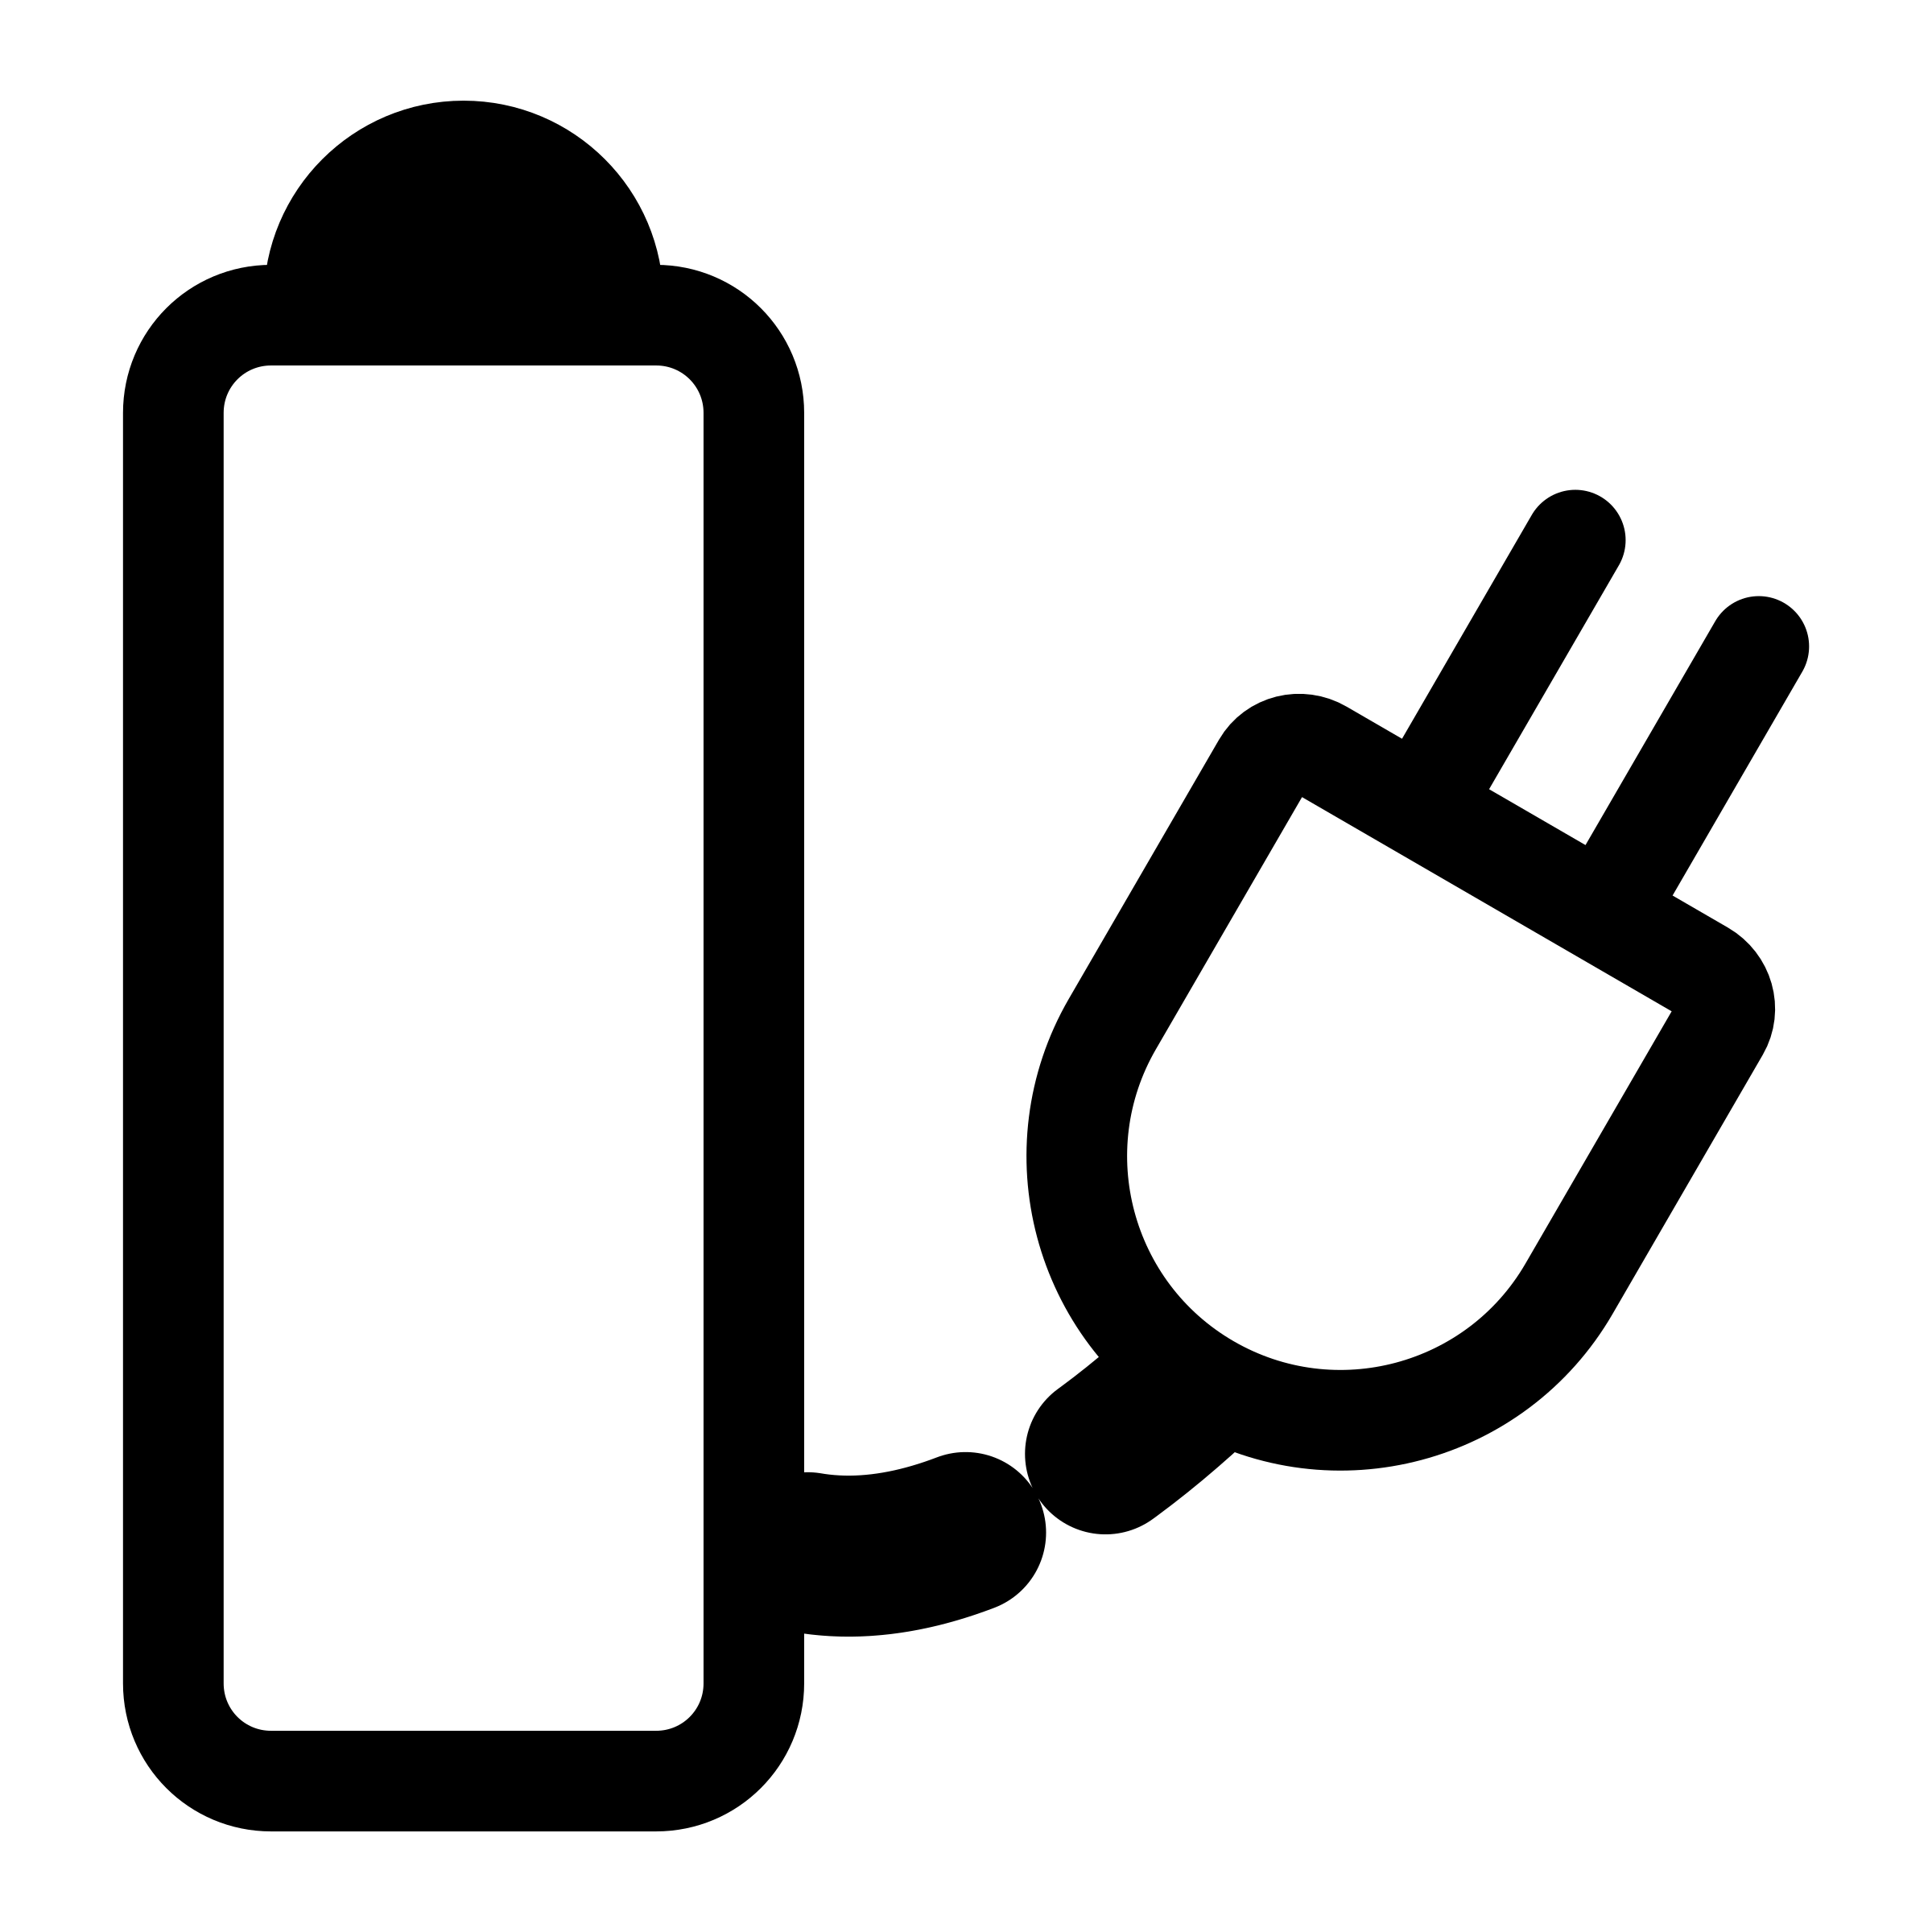 Computer icons symbol electricity. Nut clipart energy